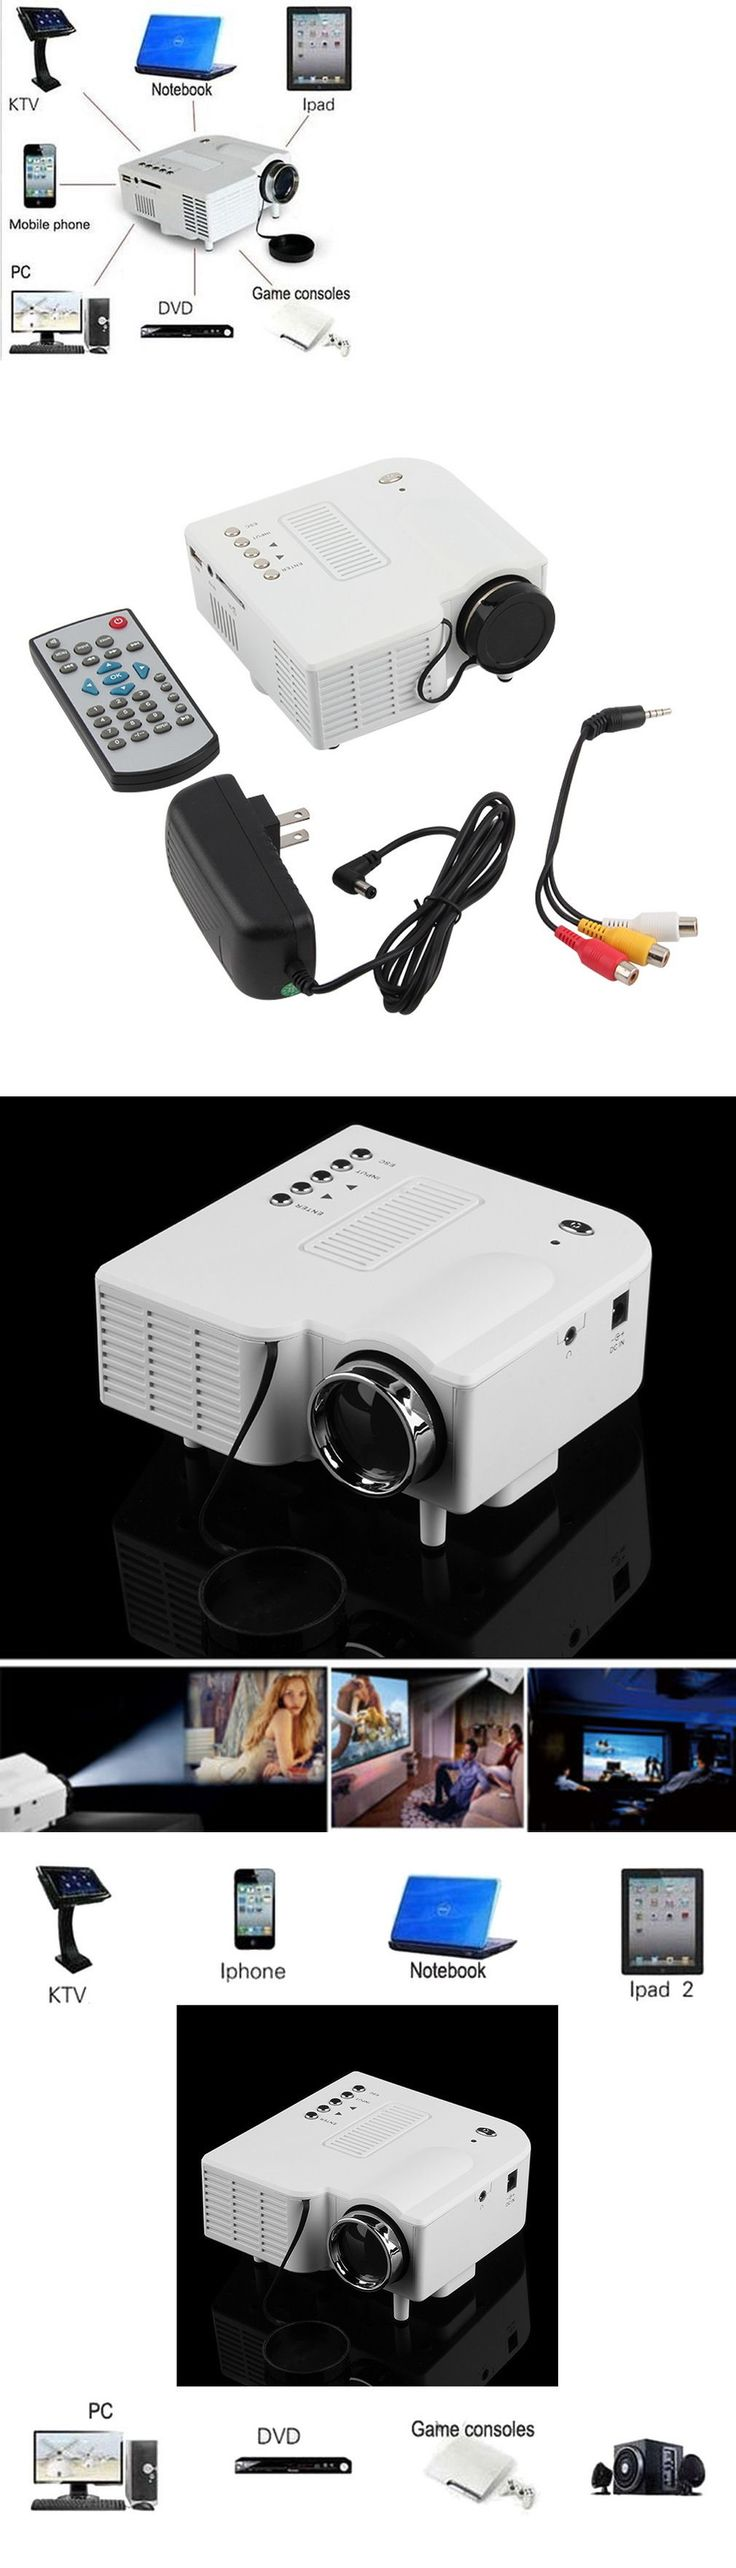 Home Theater Projectors: Hd 1080P Led Projector Home Cinema Theater Multimedia Pc Usb Sd Tv Av Hdmi Usa -> BUY IT NOW ONLY: $34.85 on eBay!